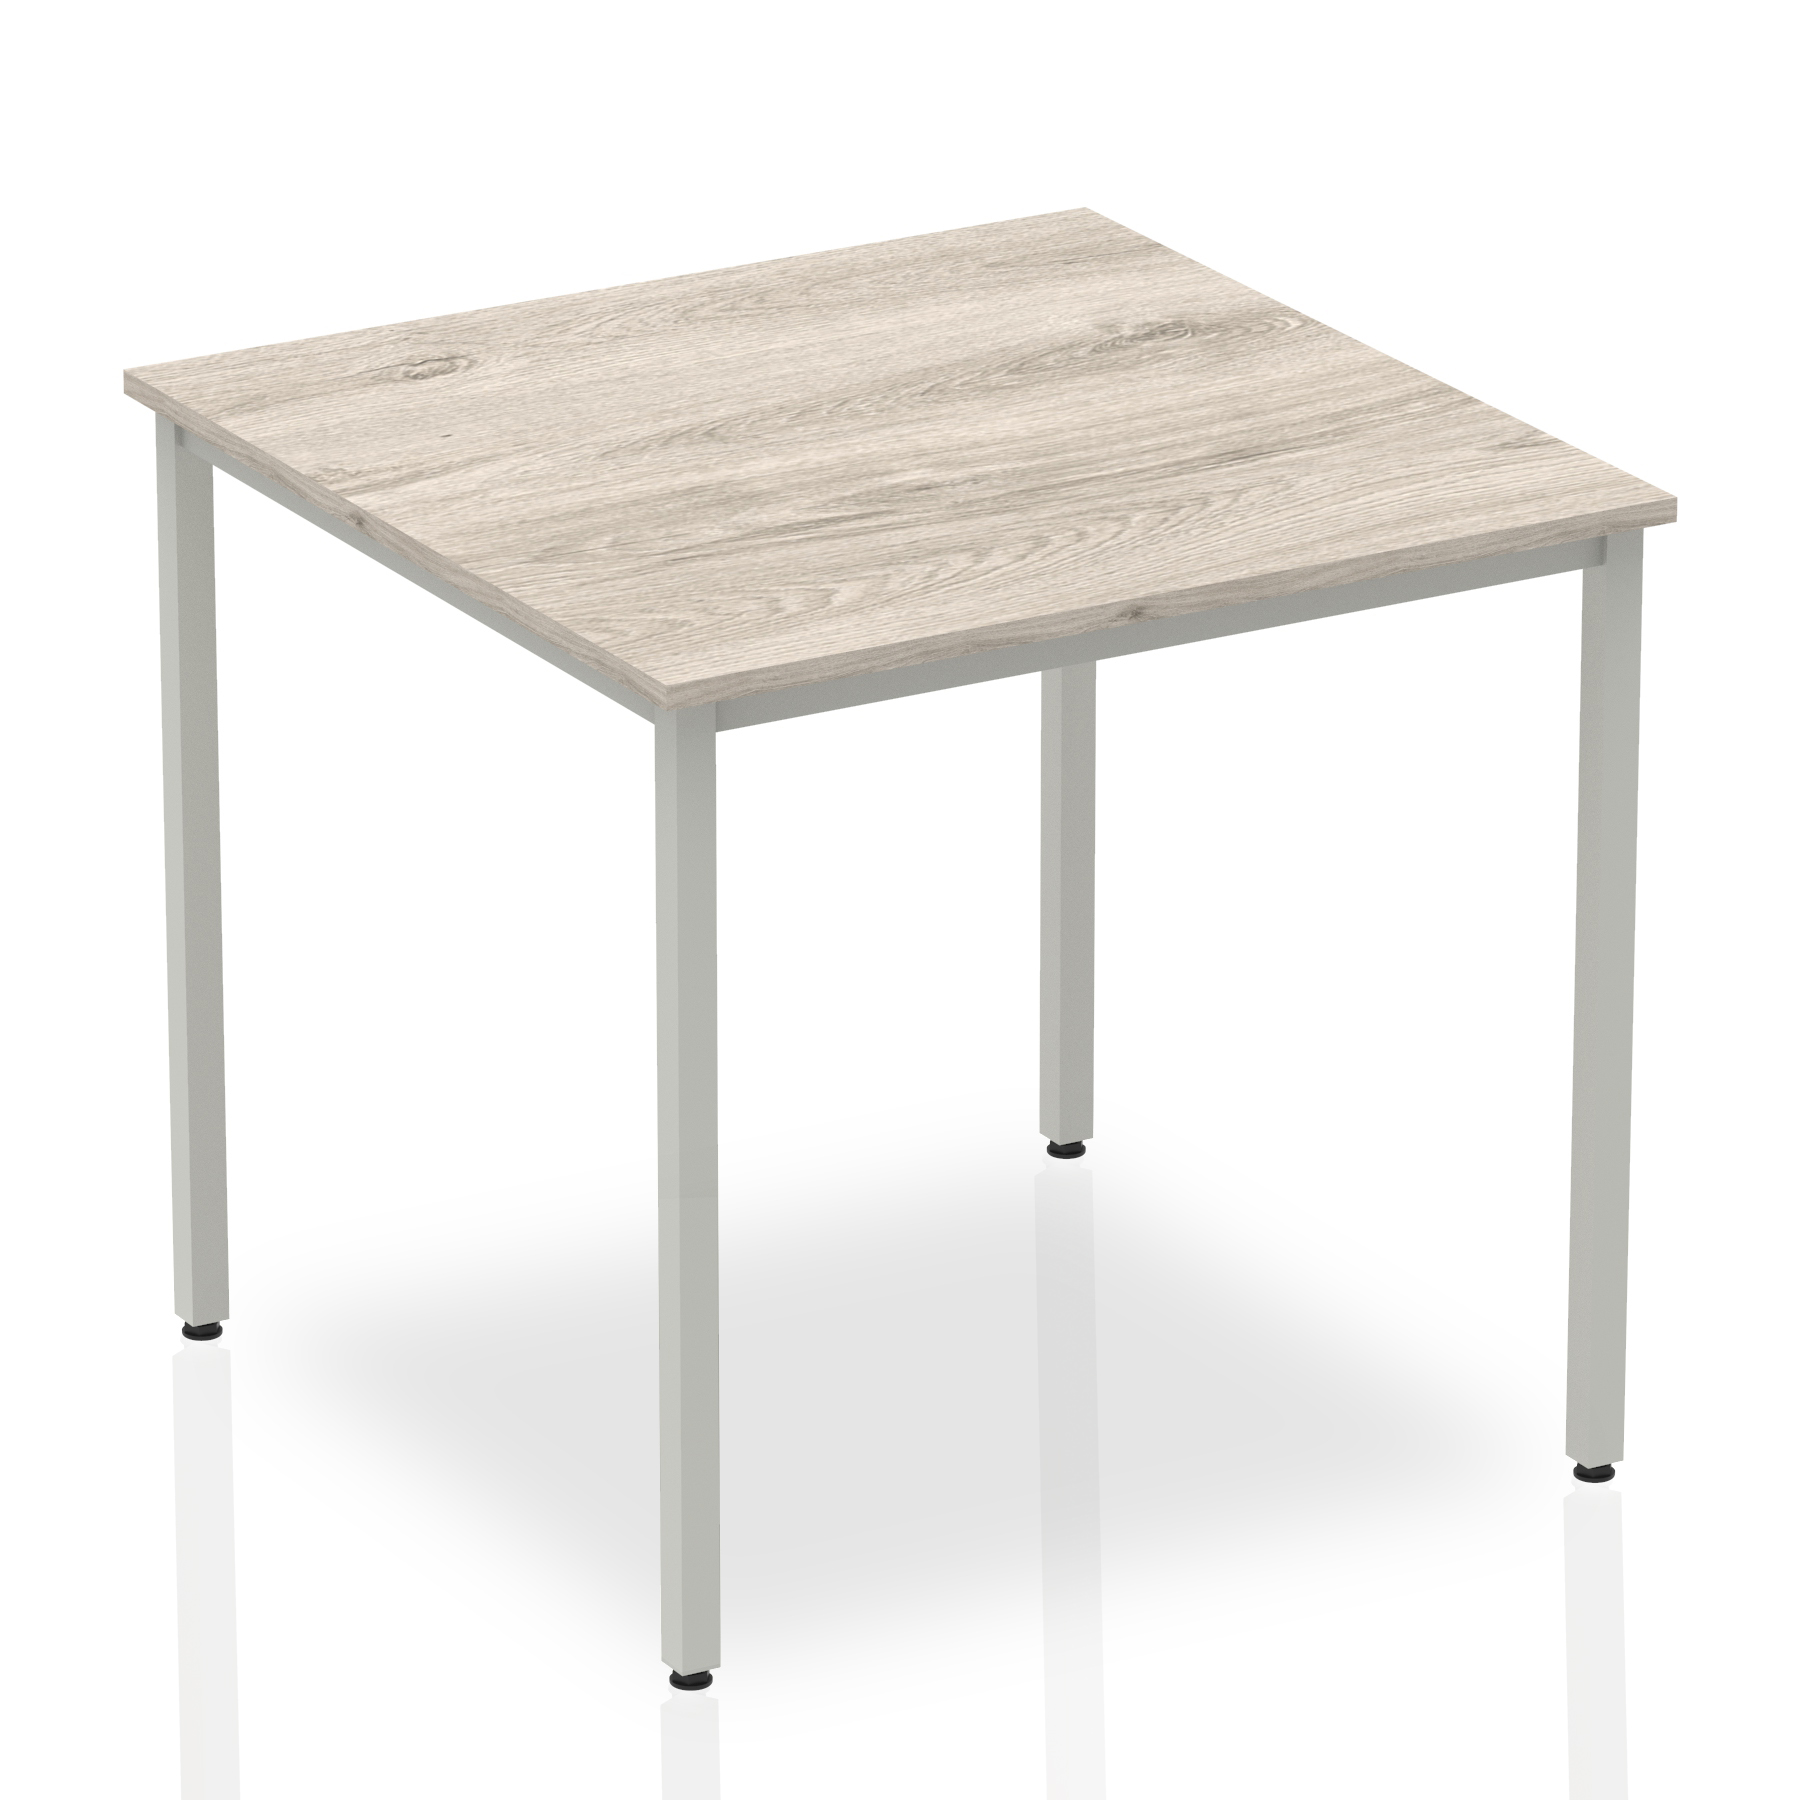 Grey Oak Square Box frame table